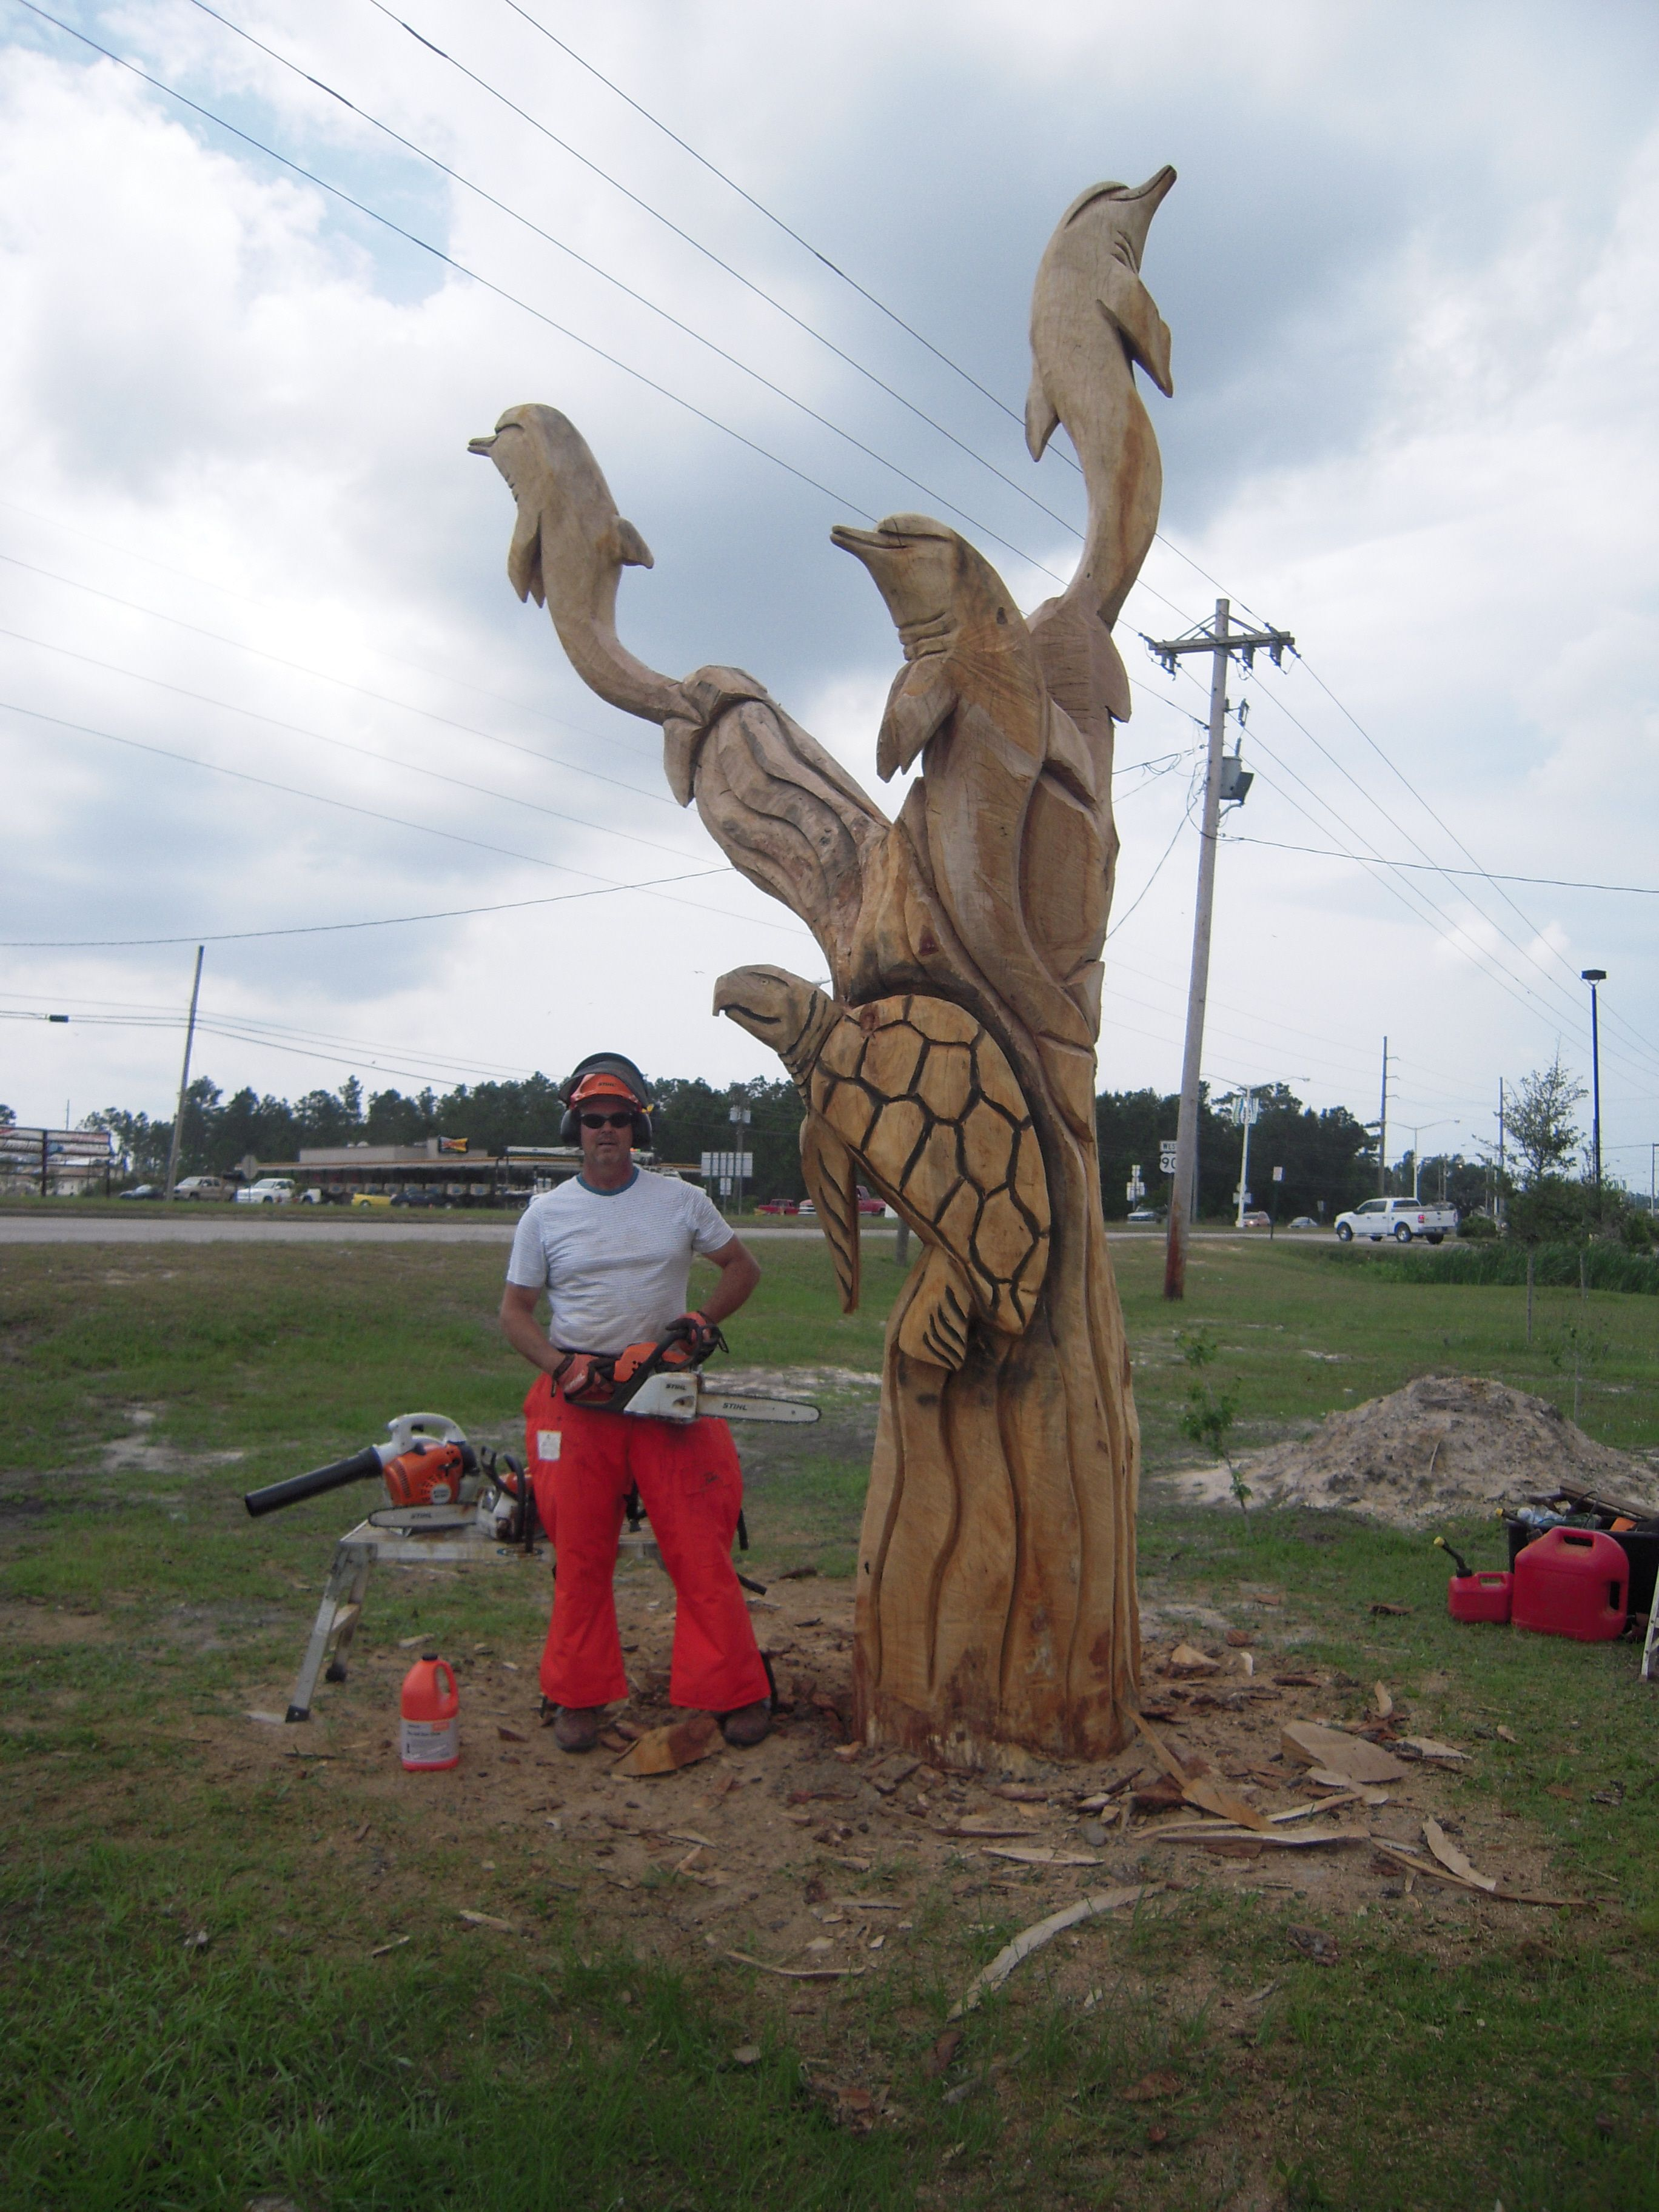 Marlin miller tree sculpture waveland mississippi from what was